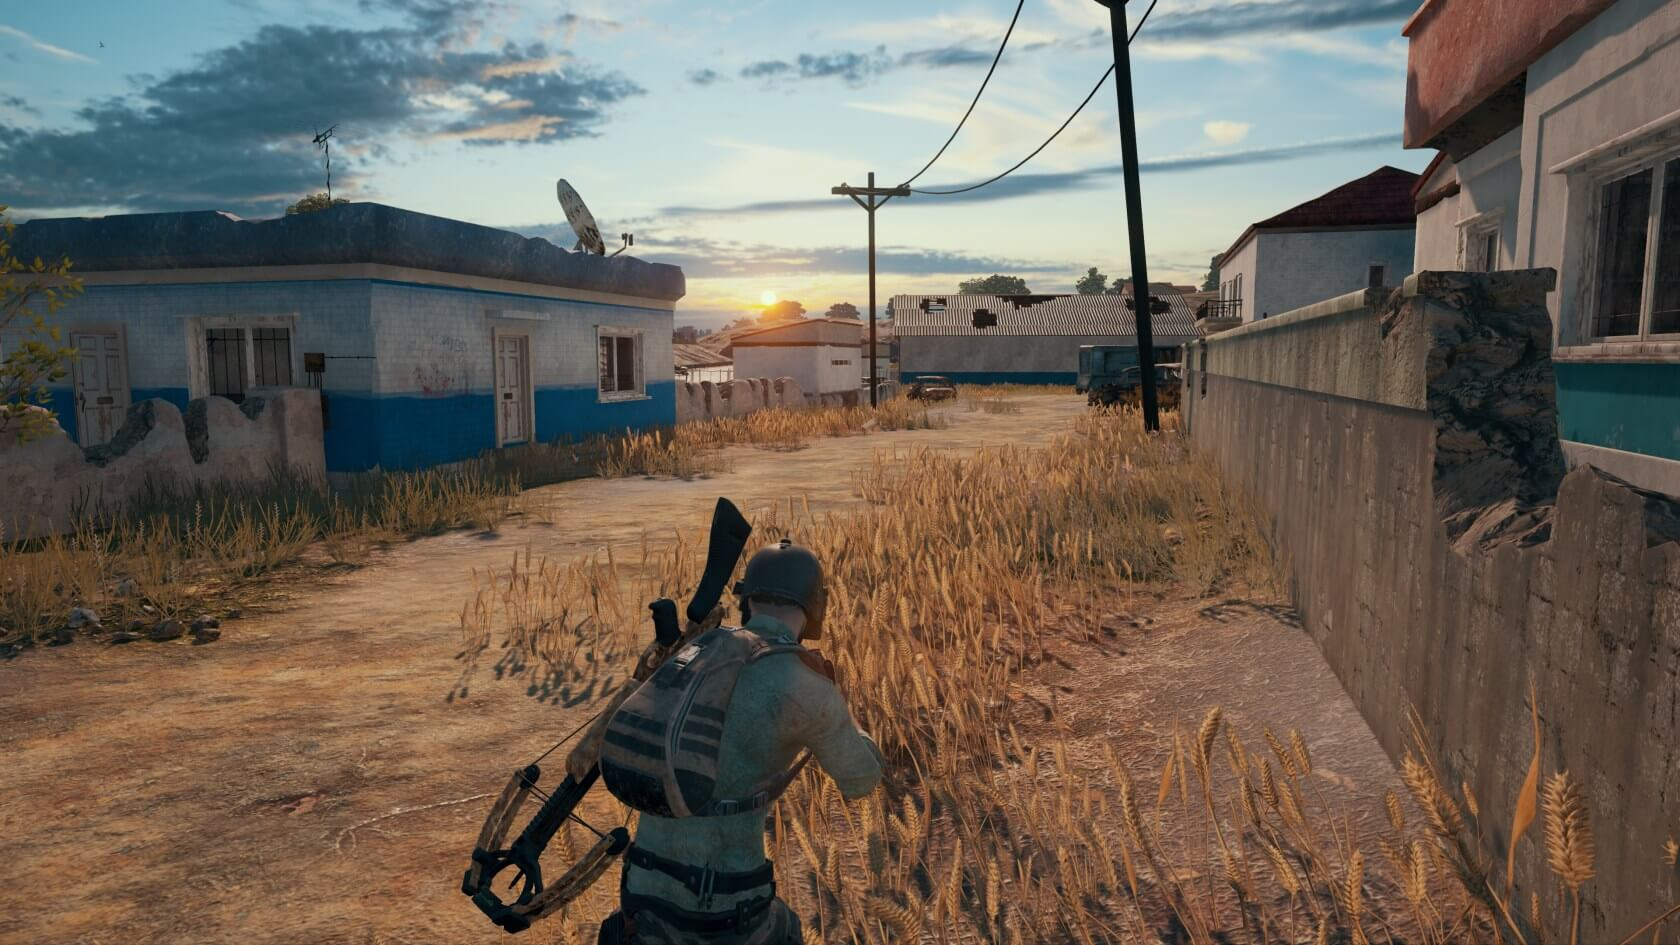 Dell rep in China claims newest laptops are good for cheating at PUBG